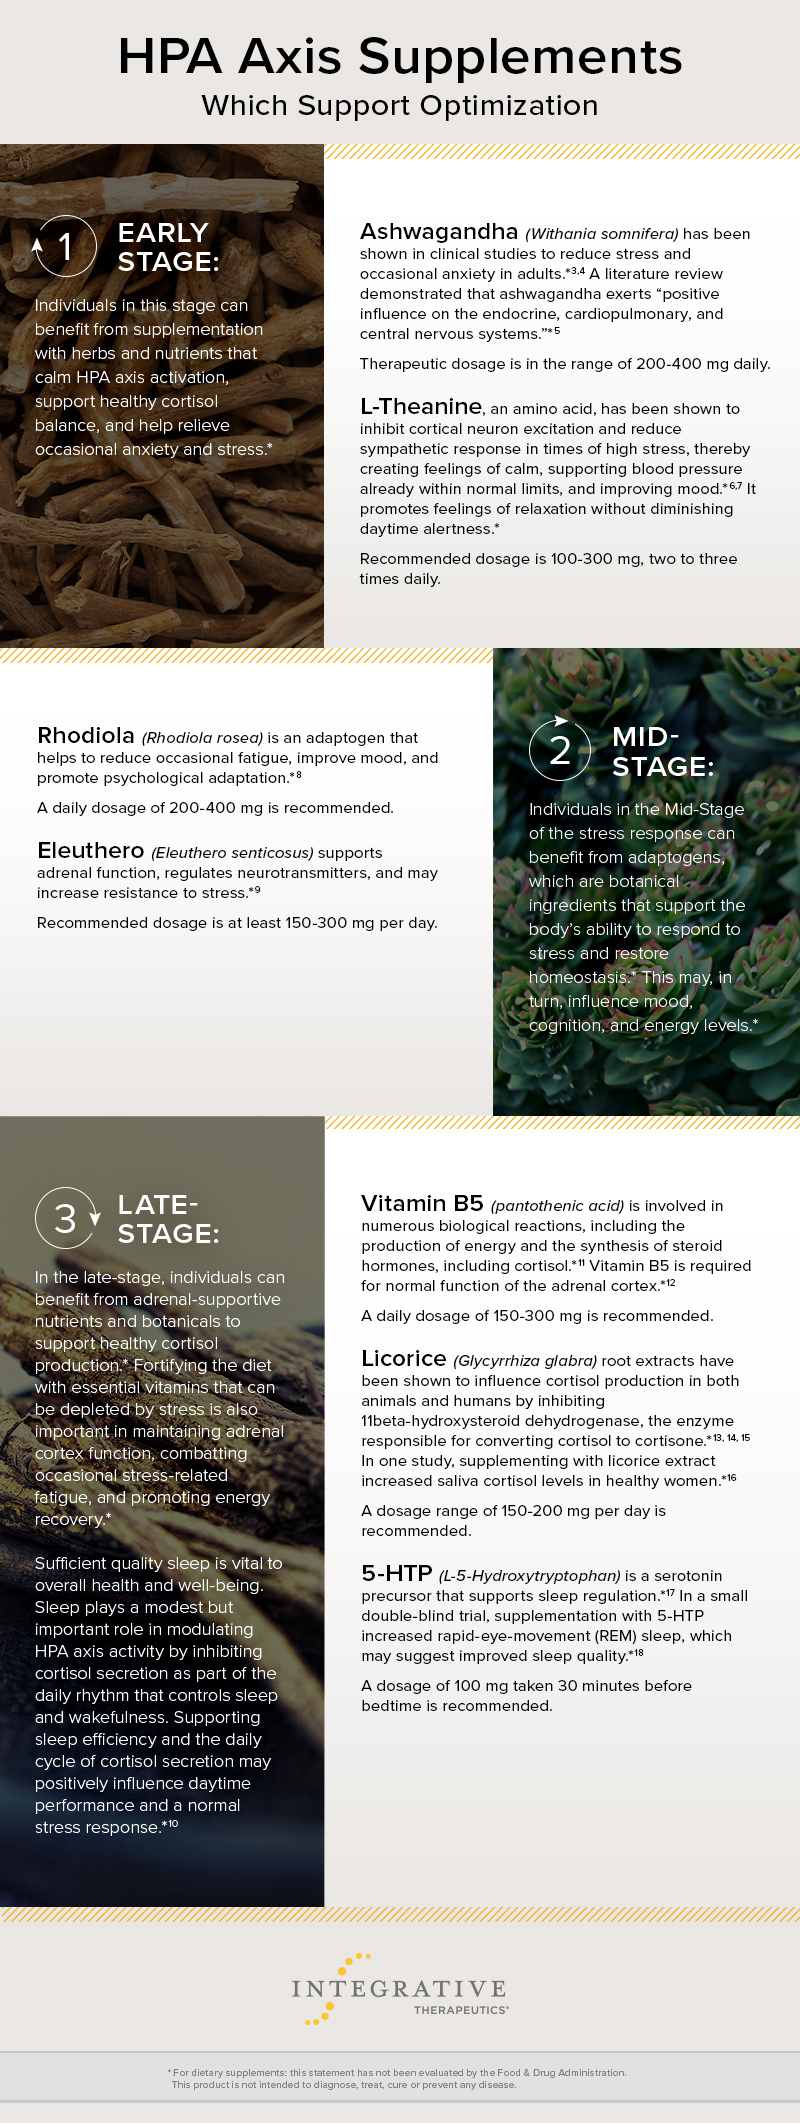 Chart of the Three Stages of Stress Response and HPA Axis Supplements to Support Optimization